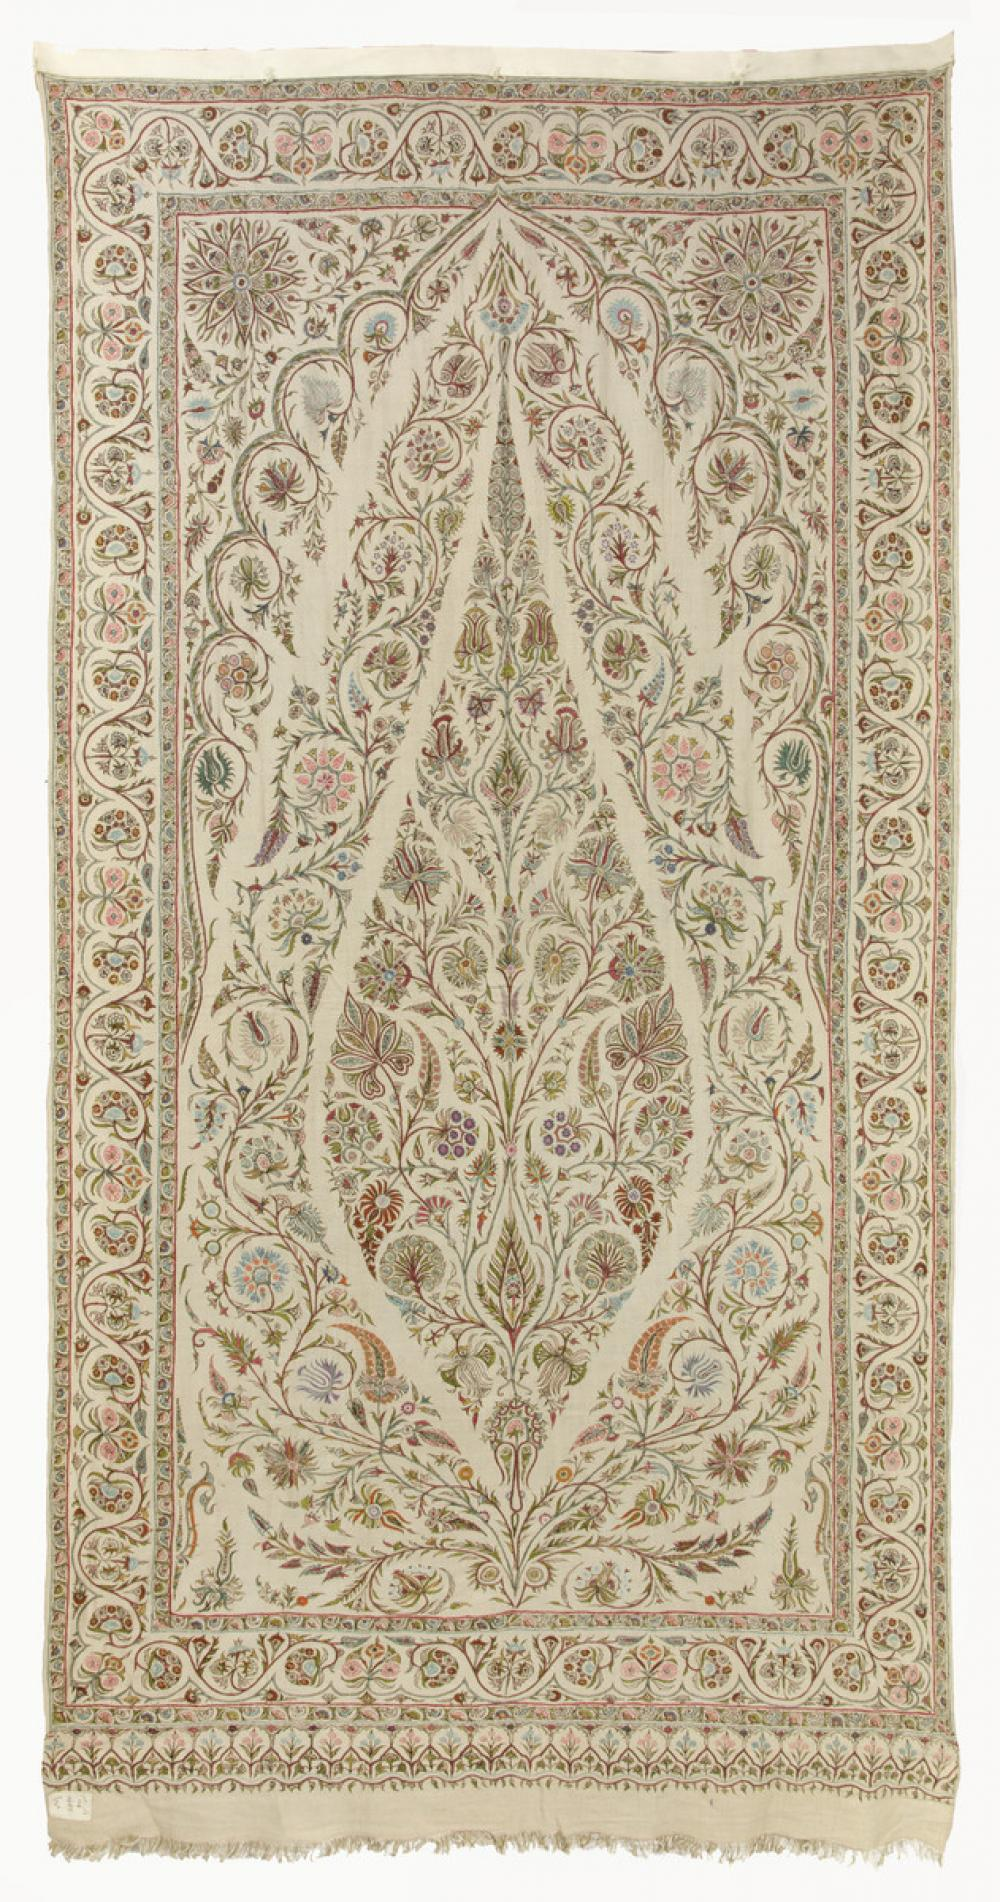 Indian, Wall hanging